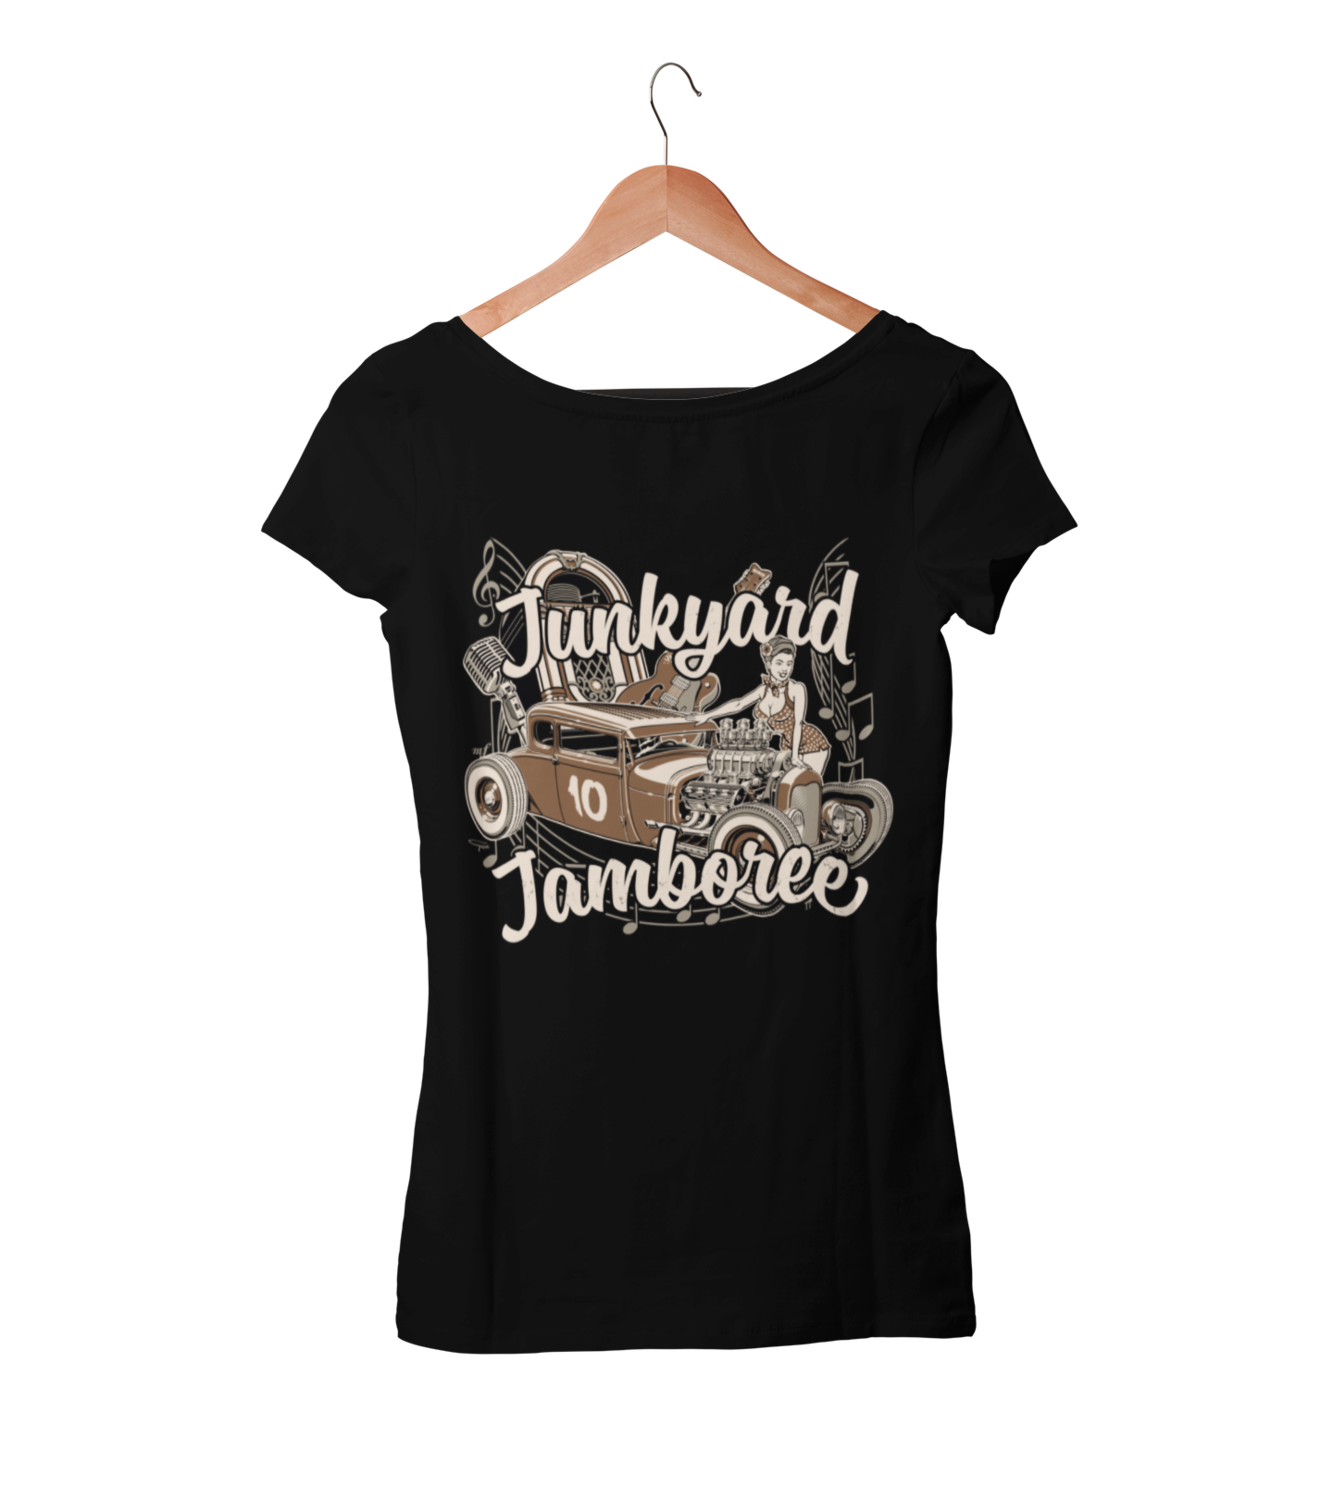 "JUNKYARD JAMBOREE HOT ROD T-SHIRT WOMAN by Ger ""Dutch Courage"" Peters artwork"